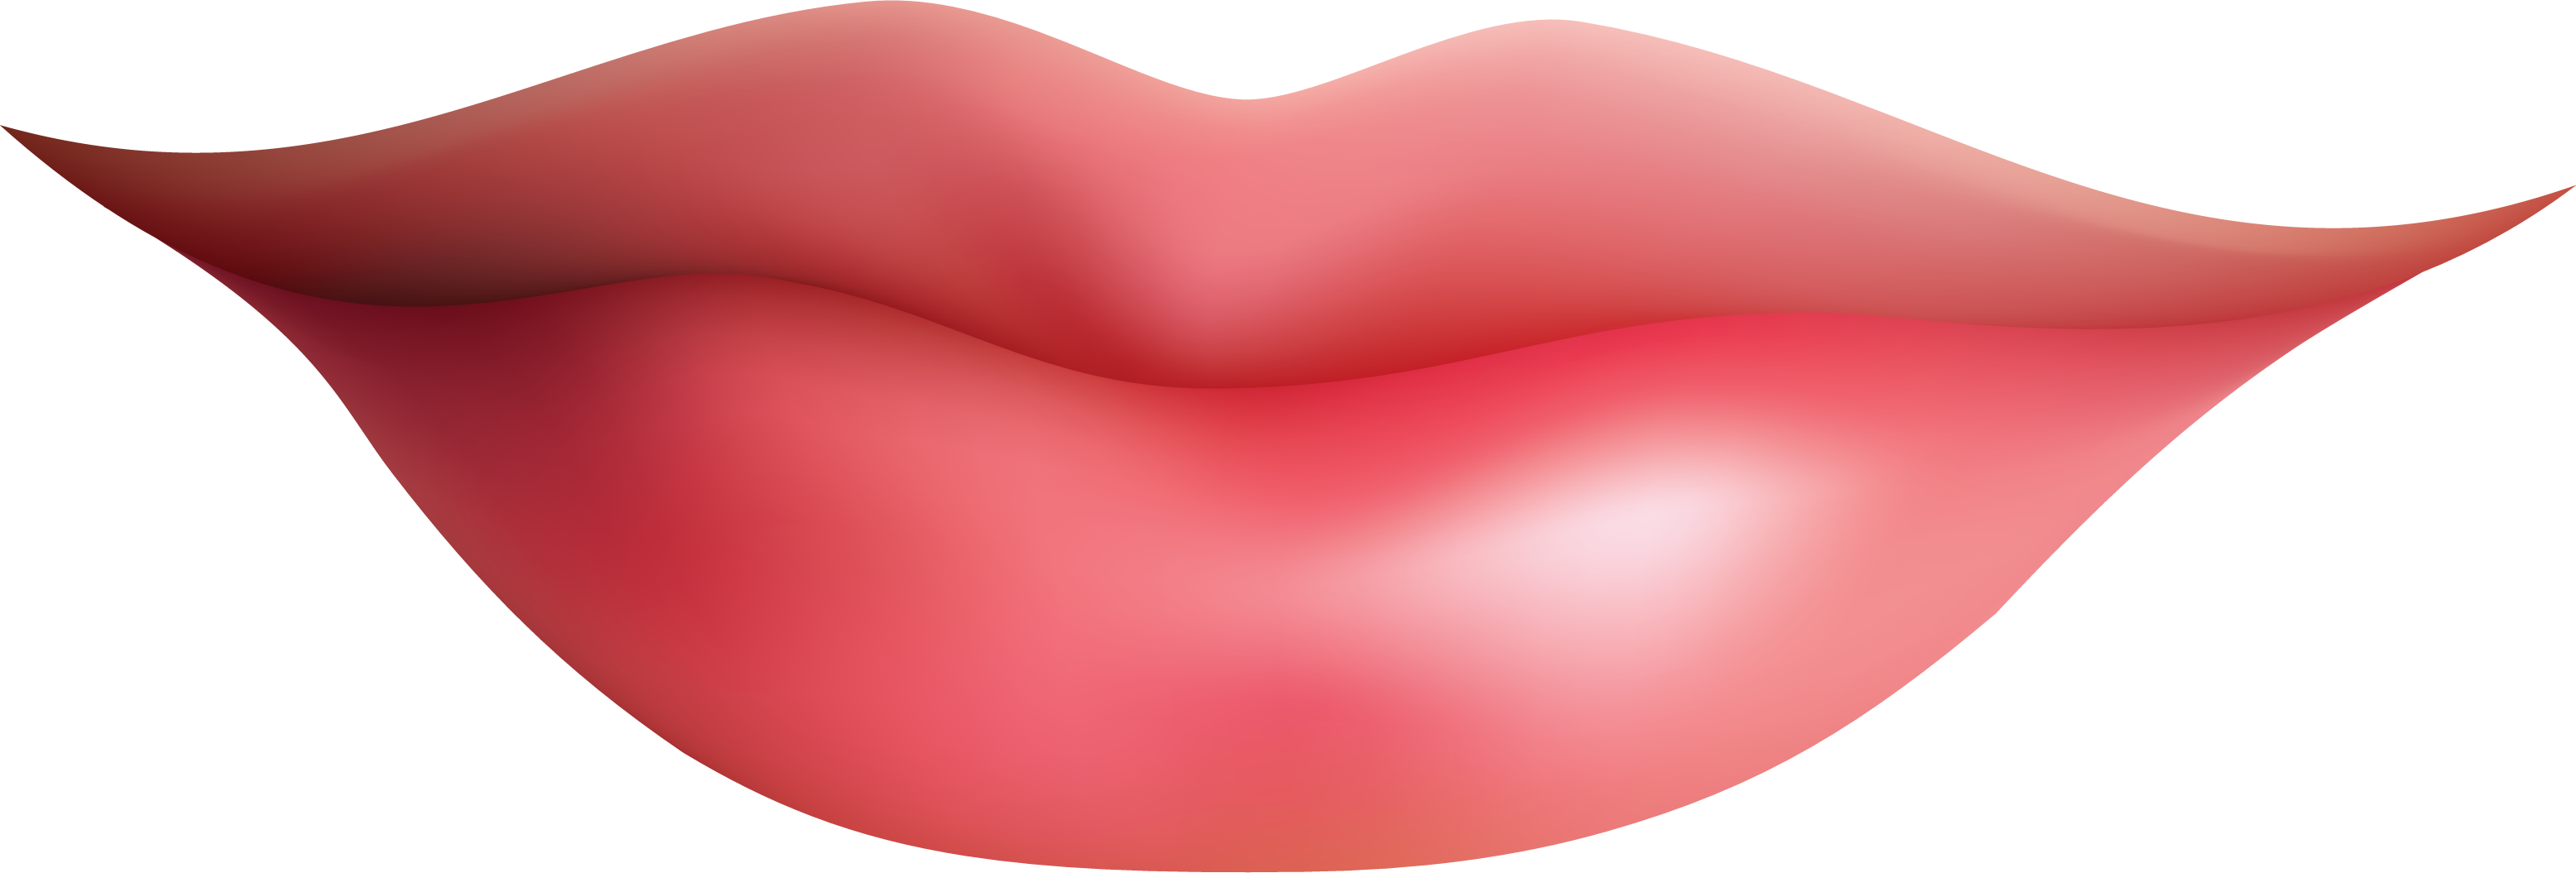 Lips PNG - 23197